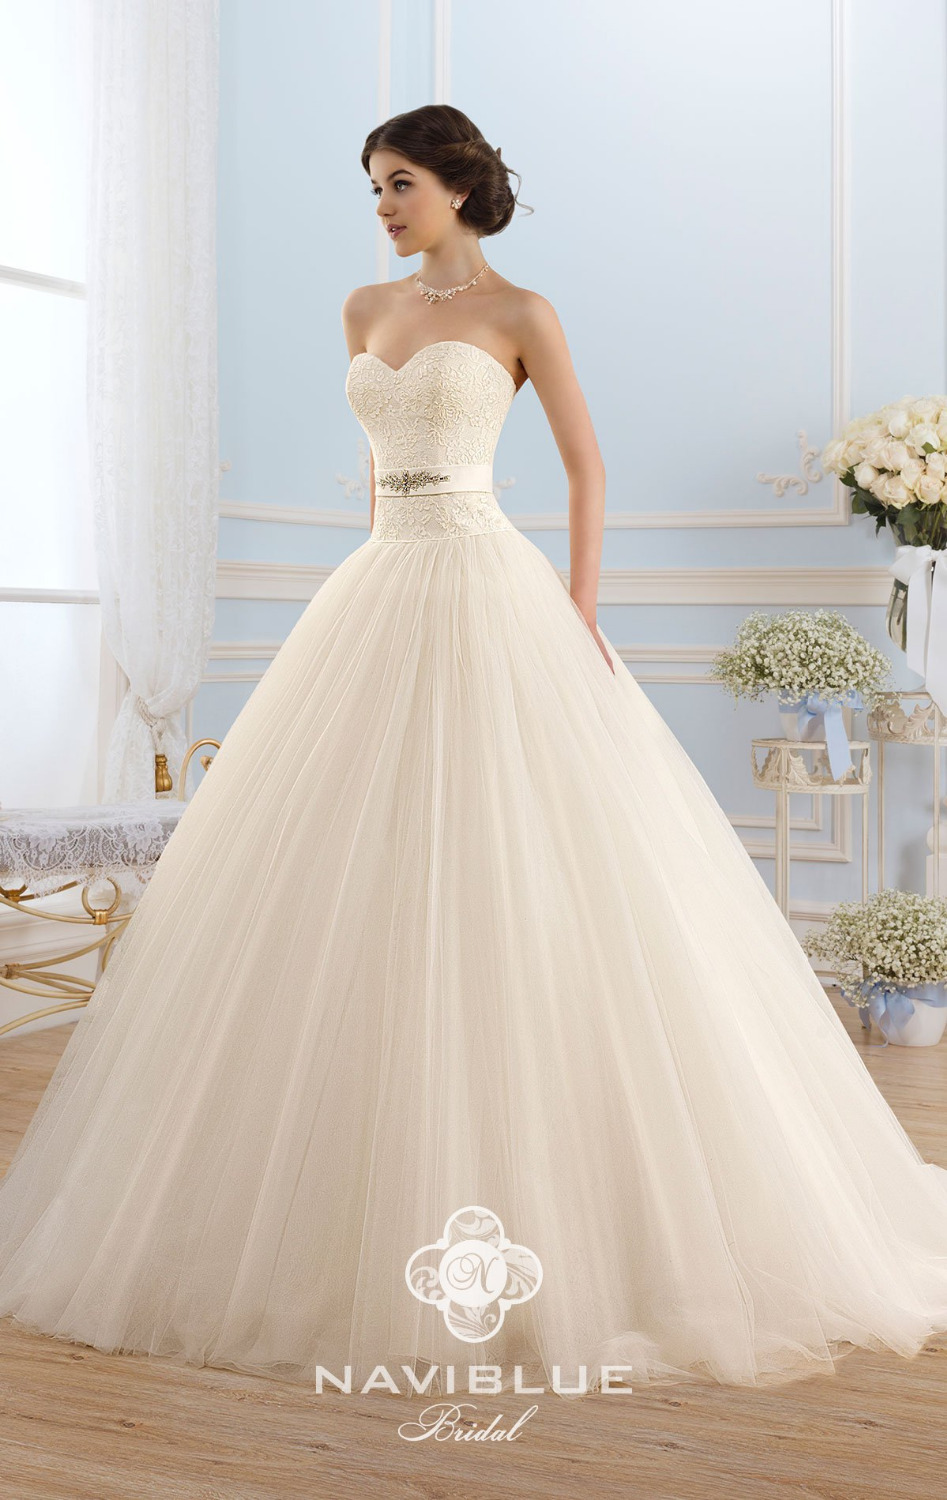 Ivory Wedding Dress Promotion Ball Gown Off Shoulder Lace Up Tulle Dresses 2017 New Arrival Bridal Gowns Princess In From